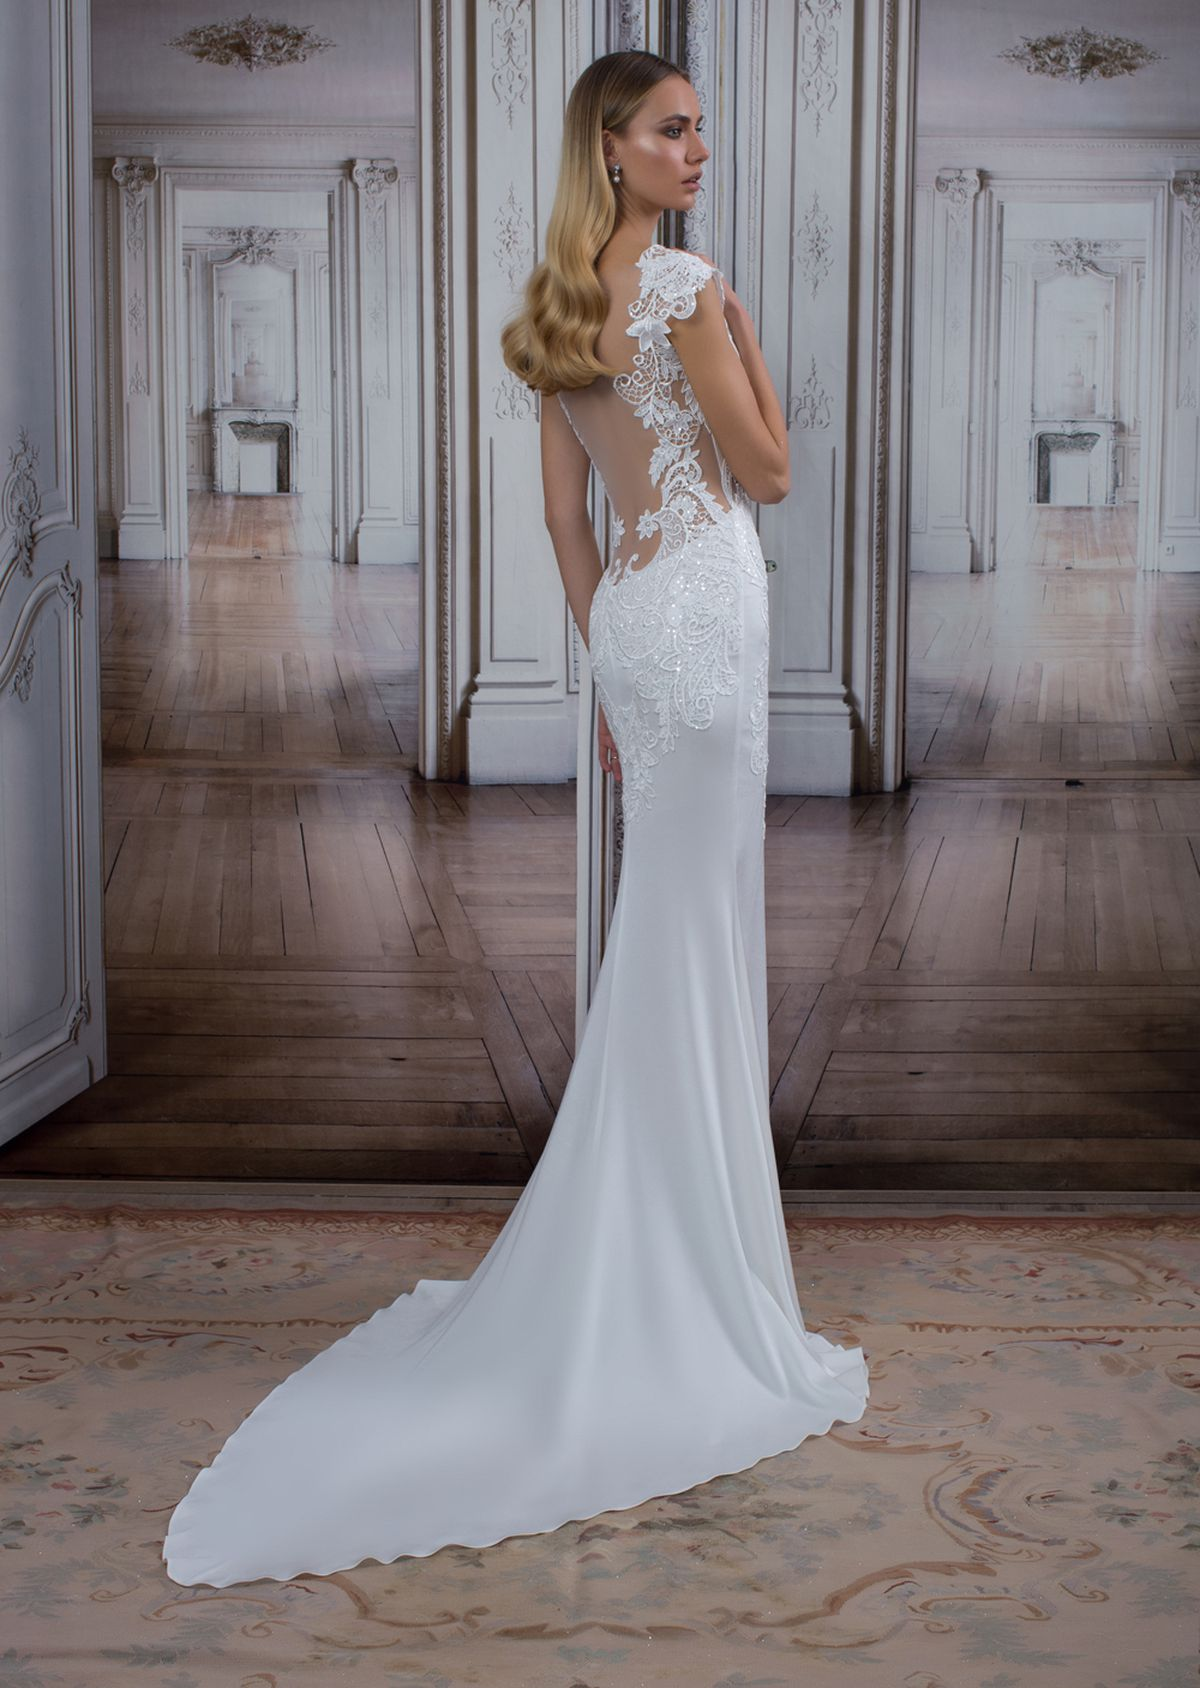 Where to Buy a Wedding Dress - Racked